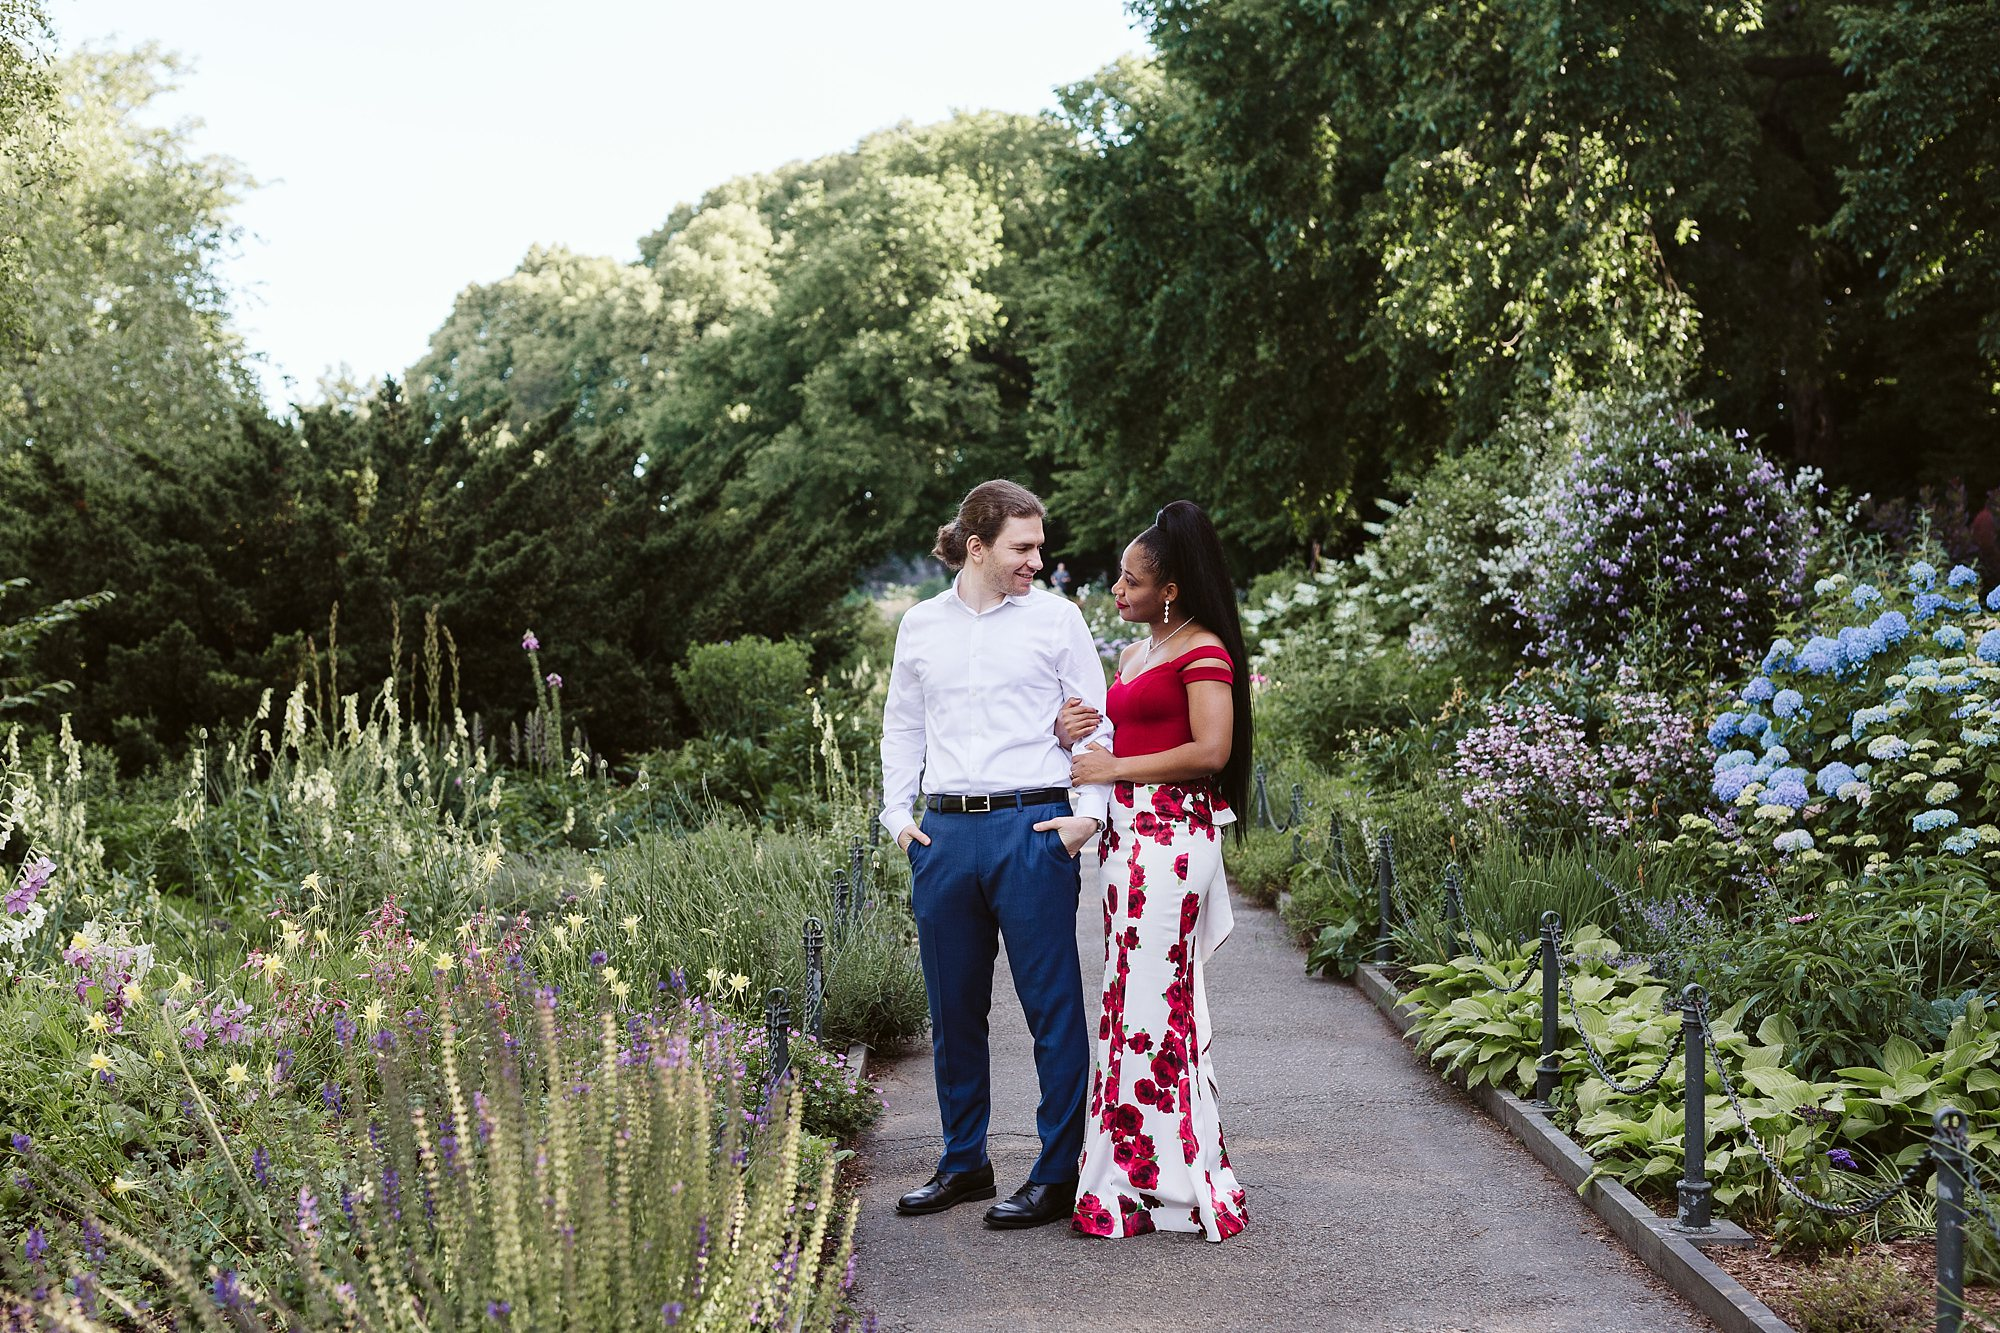 fort tryon park engagement session NYC elopement photographer Sarah Sayeed